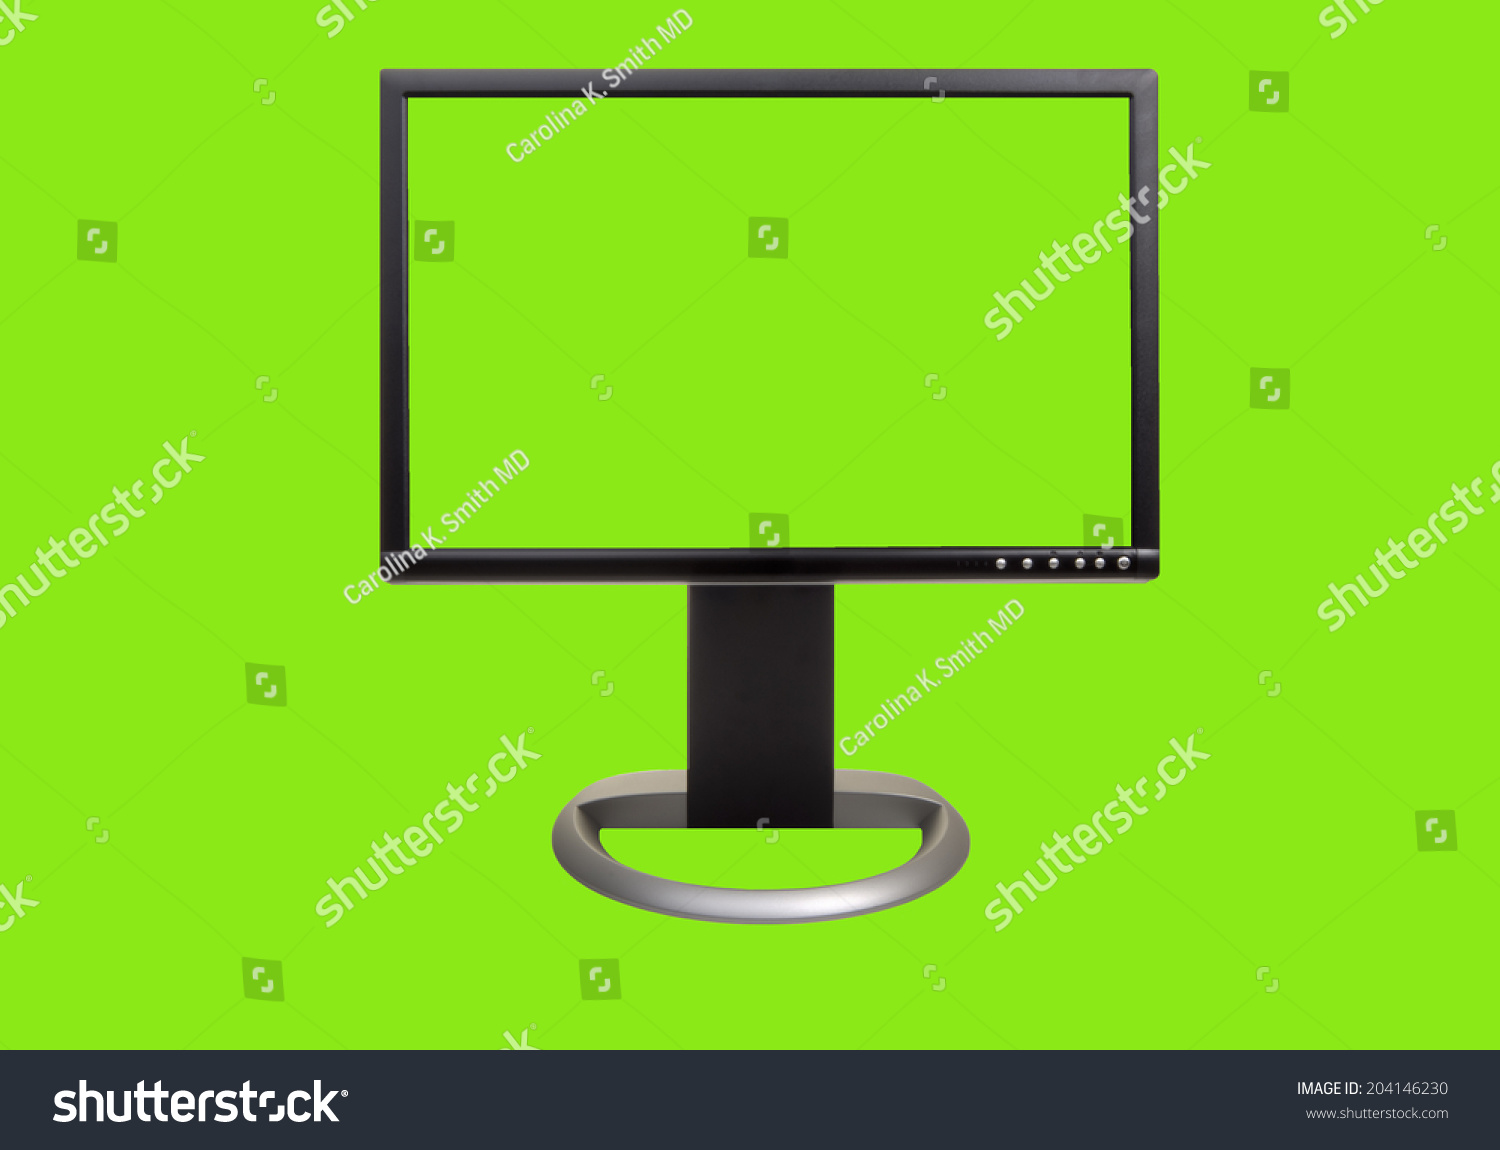 how to remove green screen in pdf